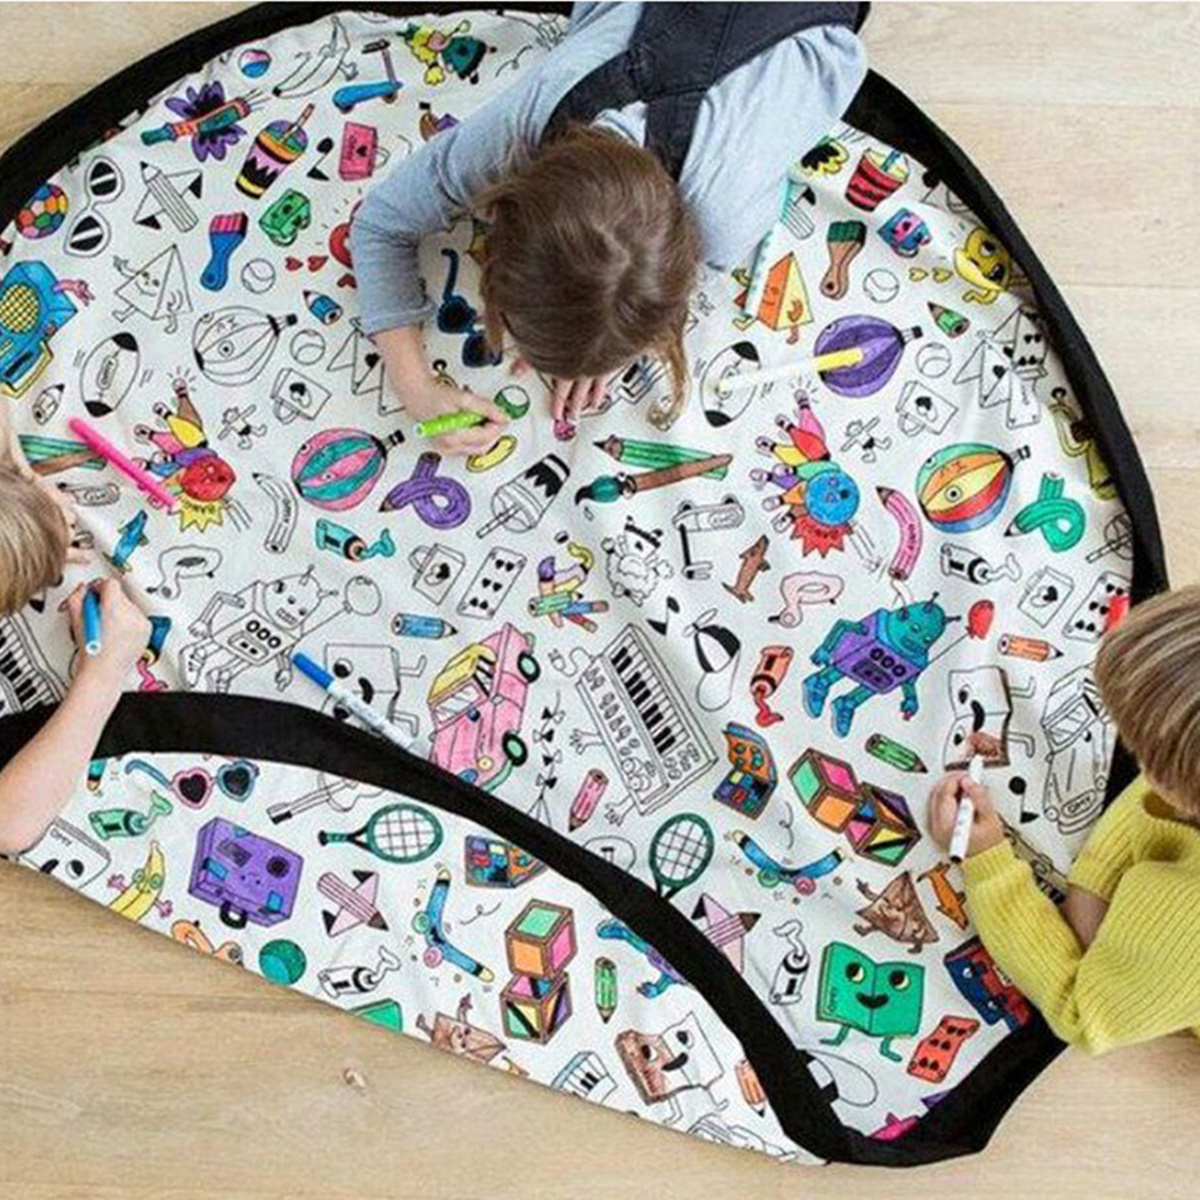 Doodling Play Mat Toy Storage Canvas Bag Durable Floor Activity Organizer Mat Large Drawstring Portable Container for Kids Toys